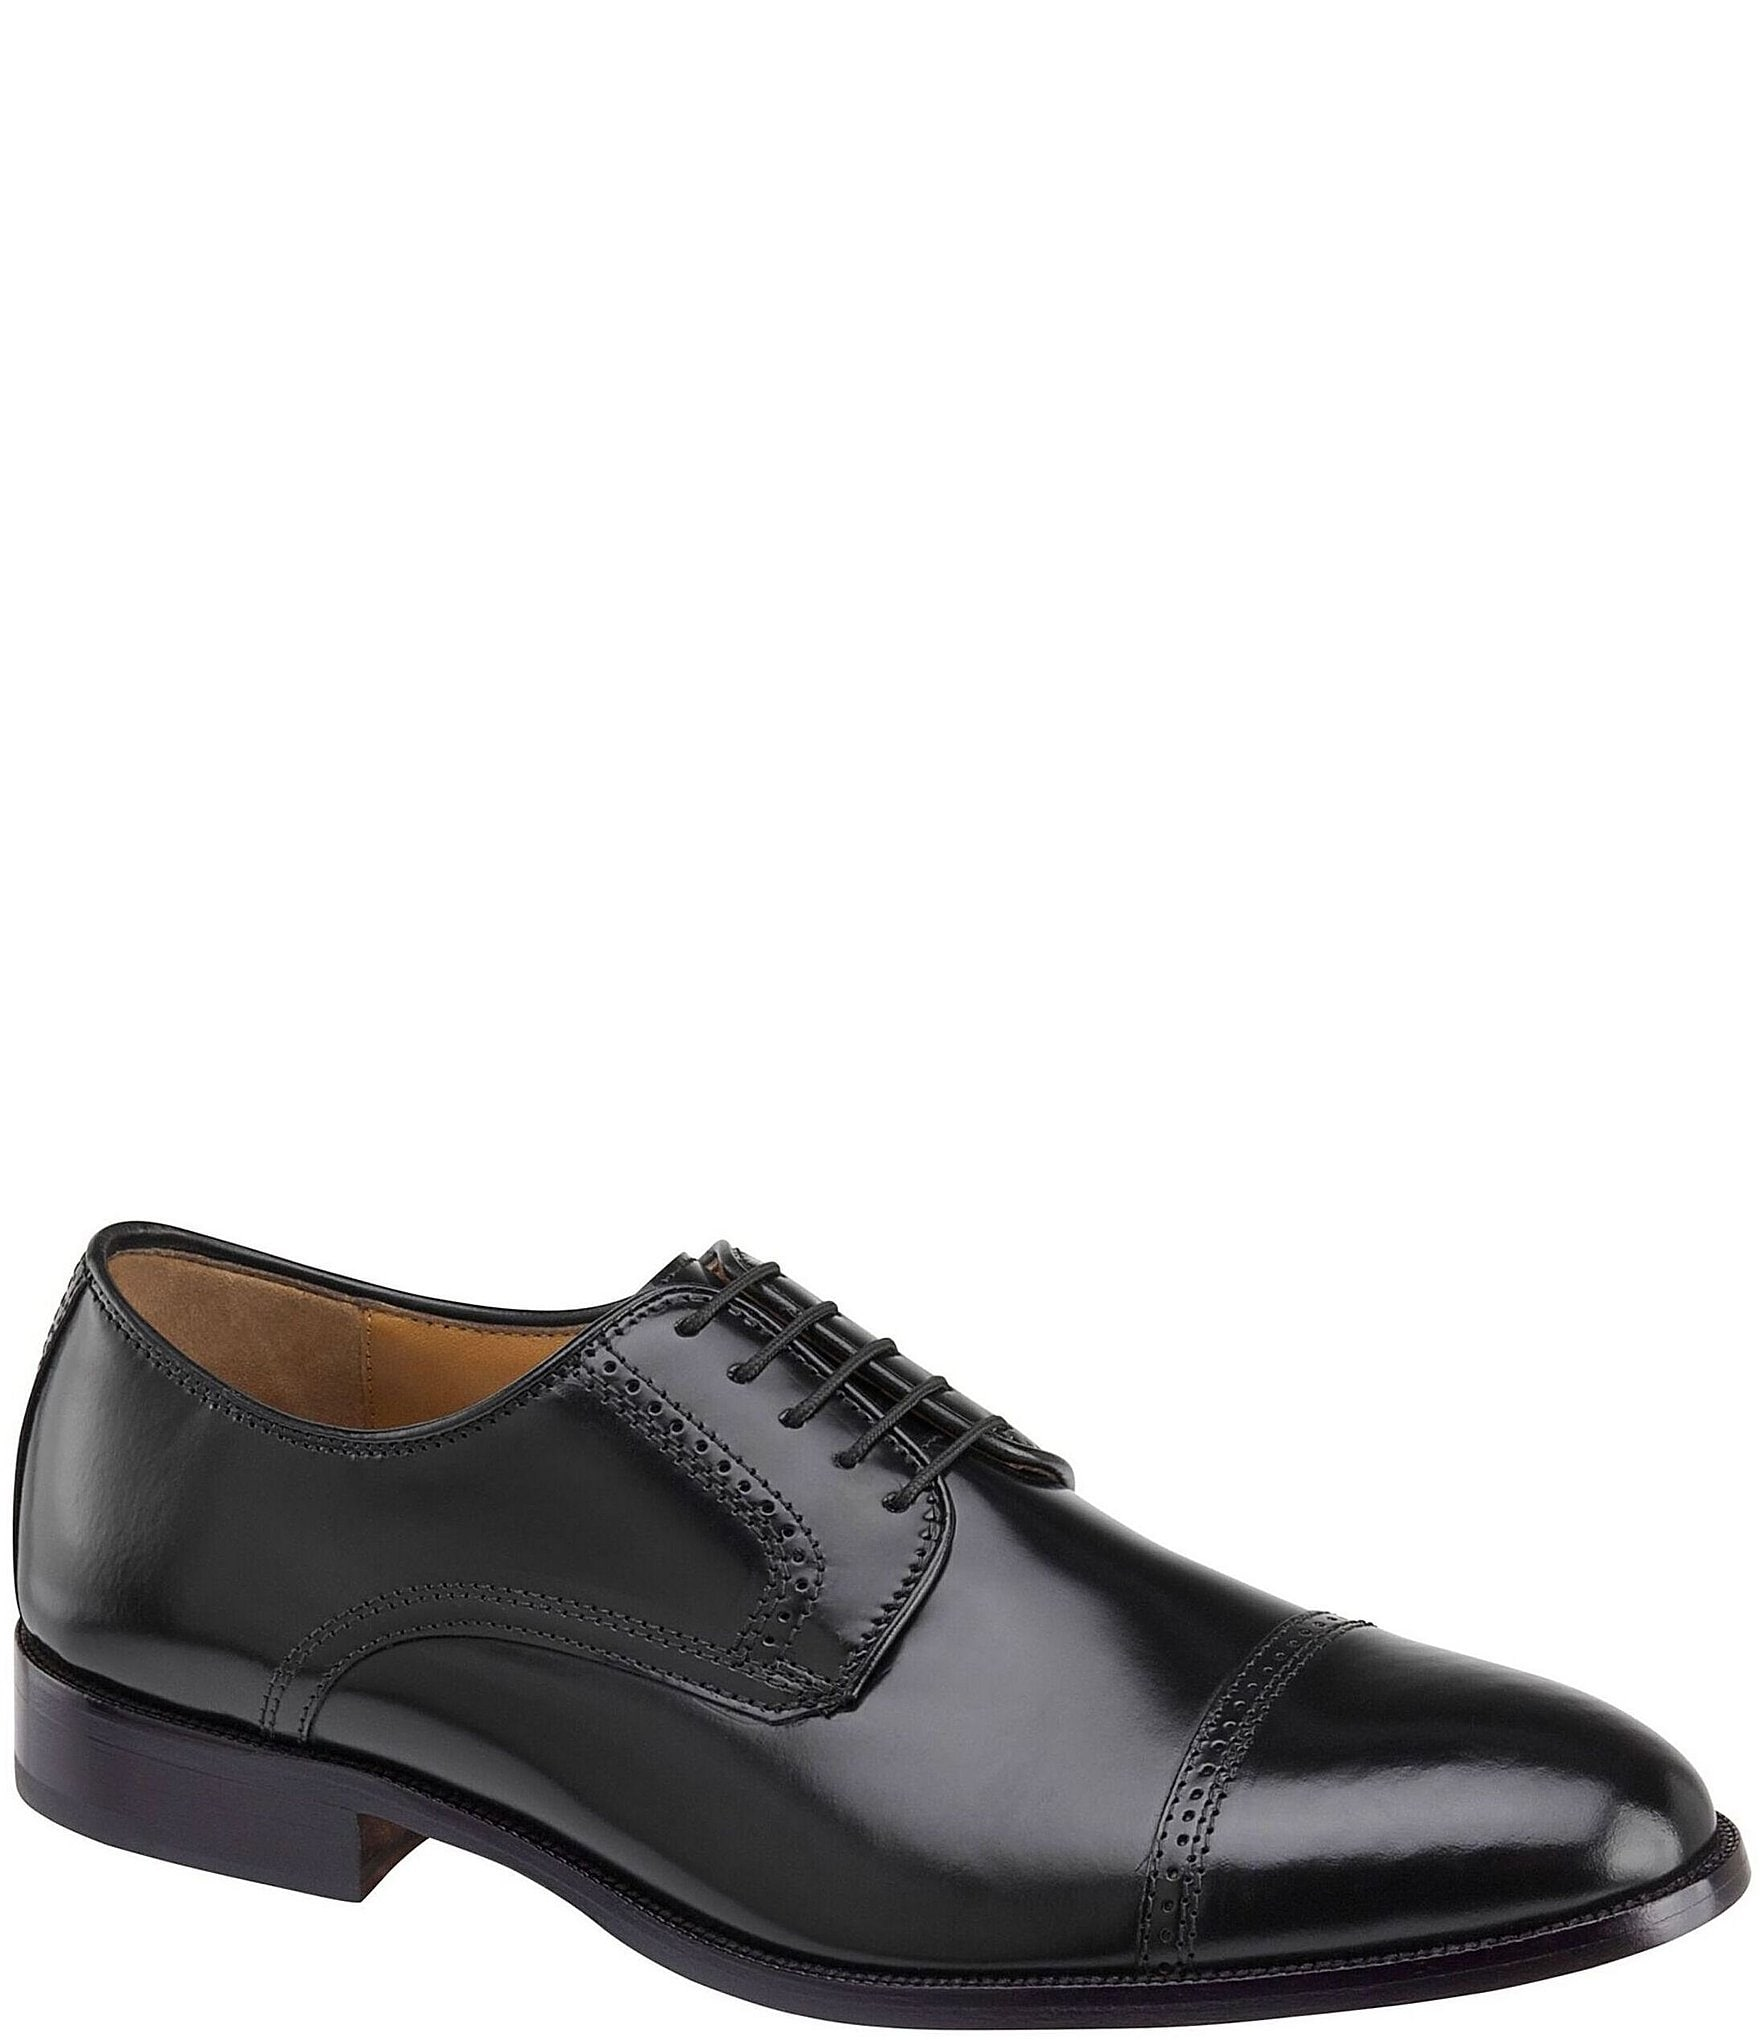 NINE2FIVE Classic Penny Loafers  Black  Mens Formal Shoes